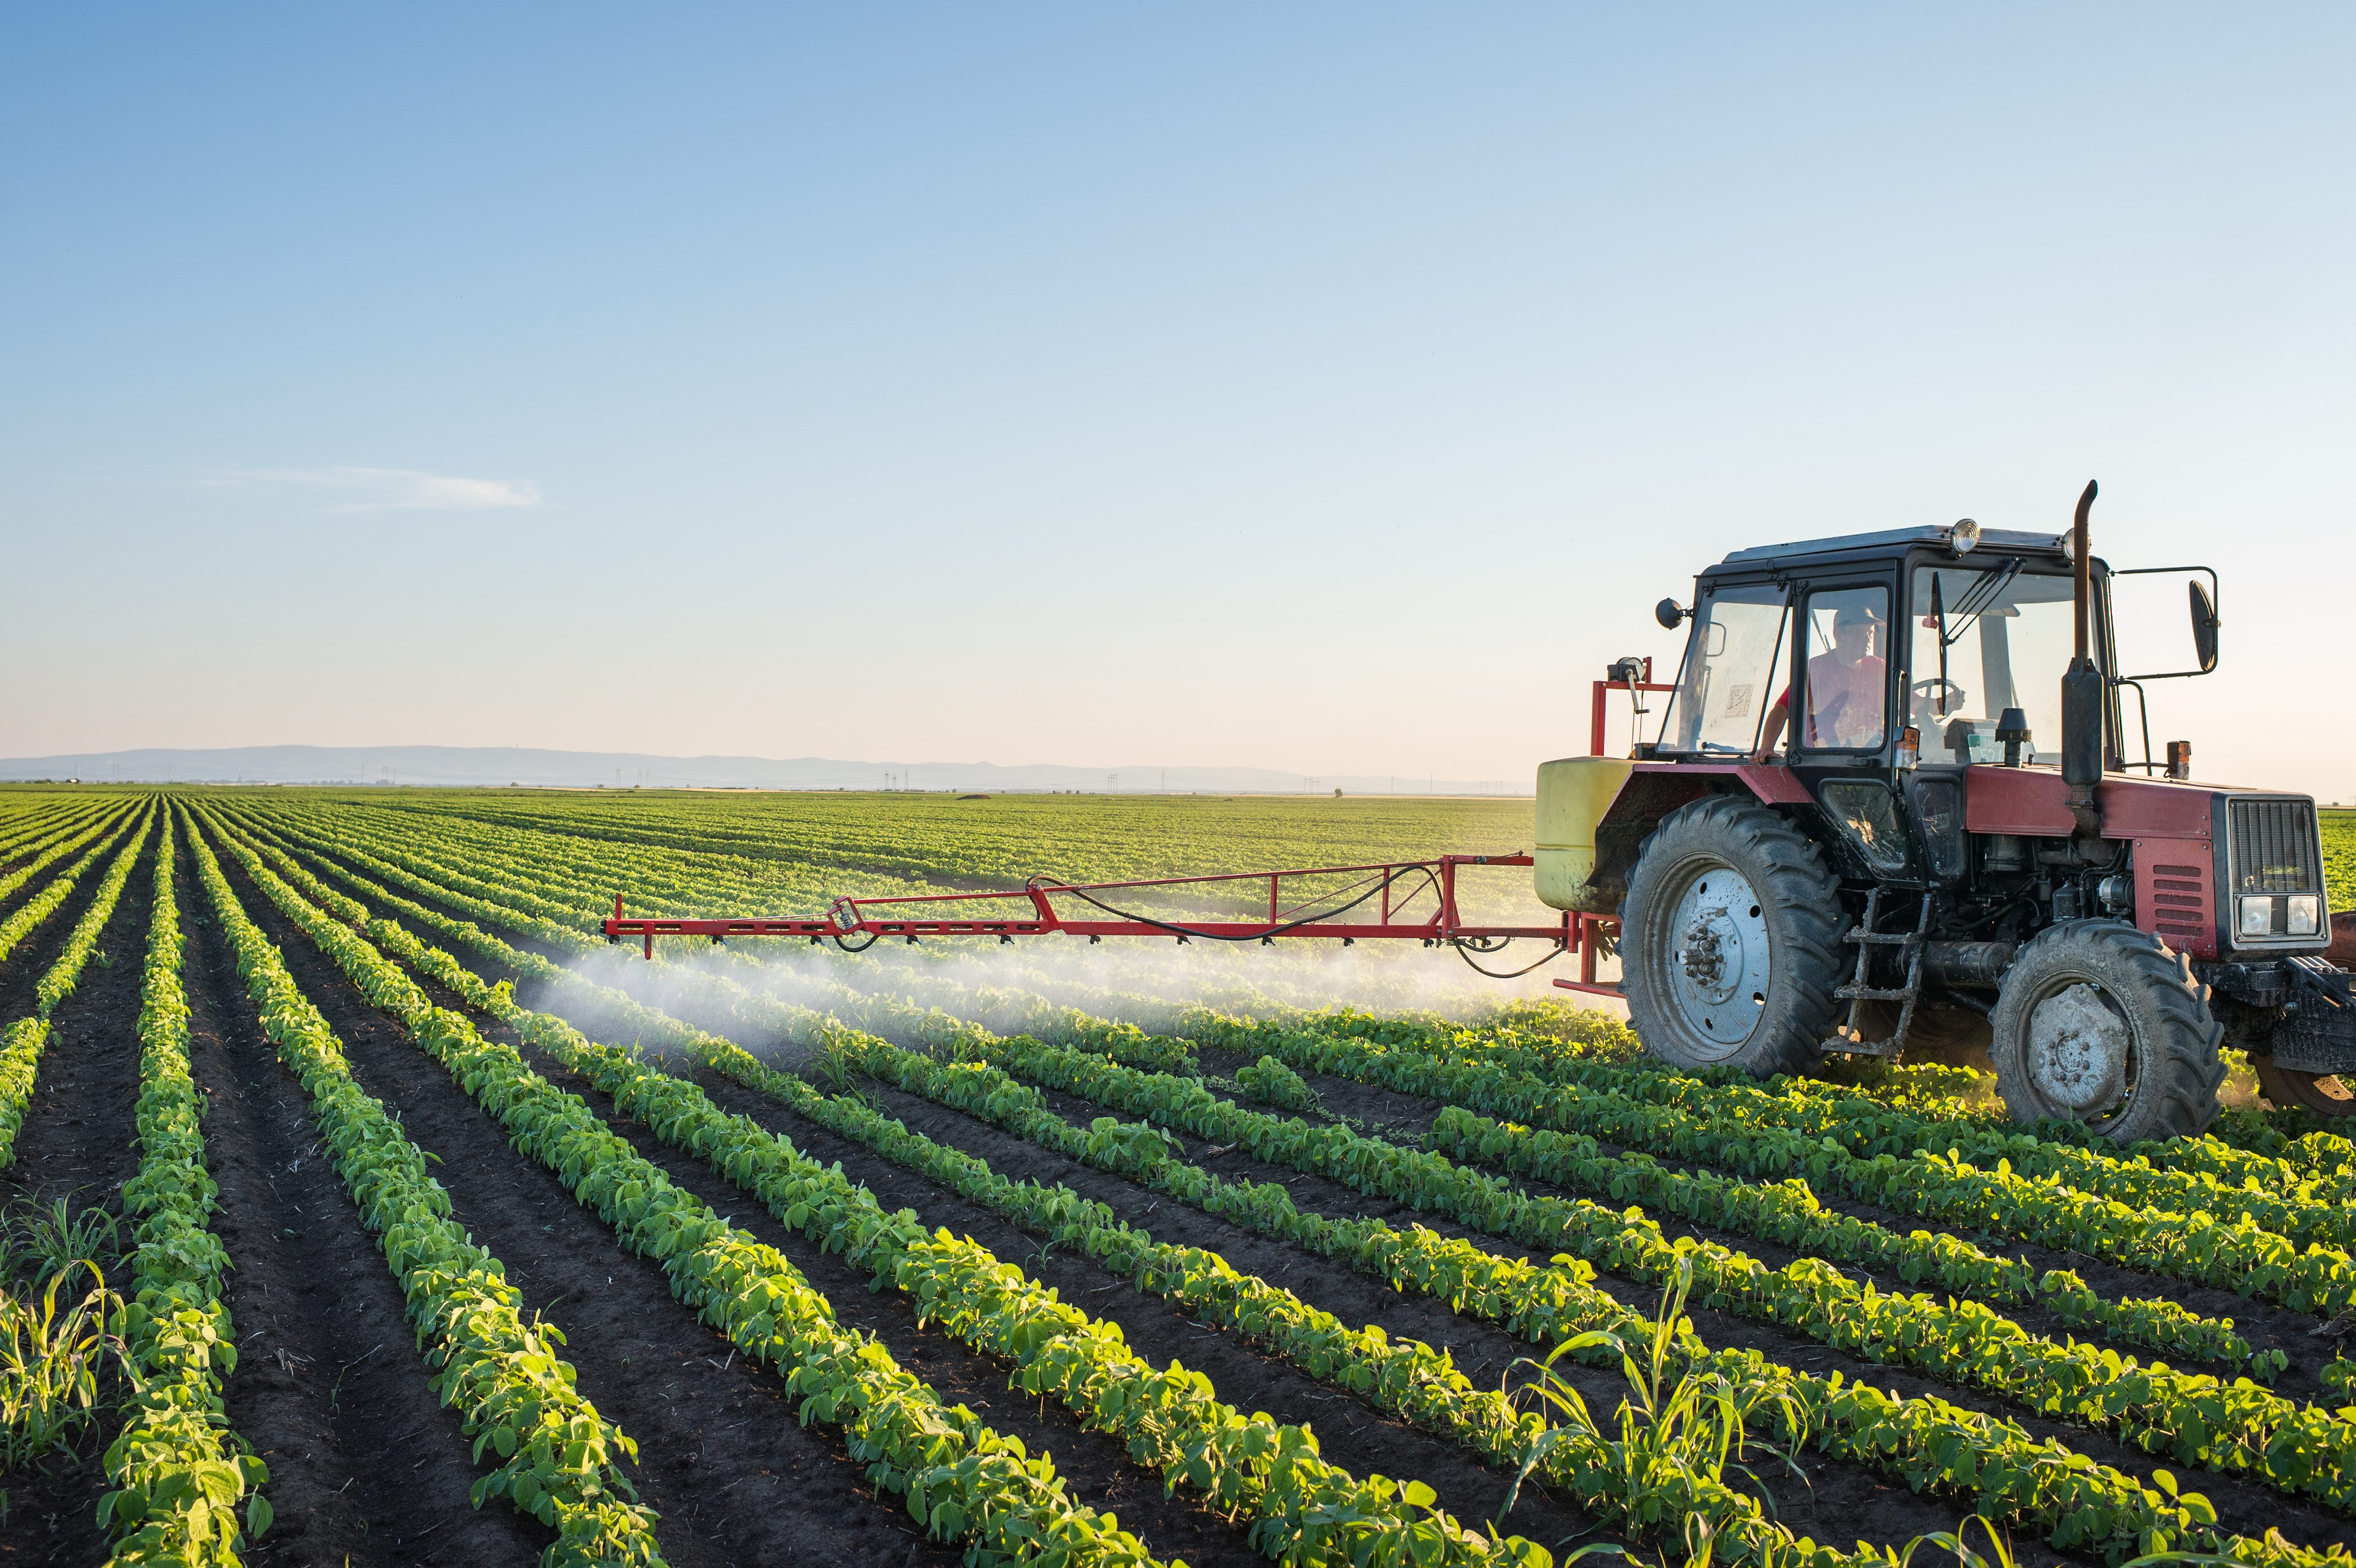 Farmers will have to generate more yield